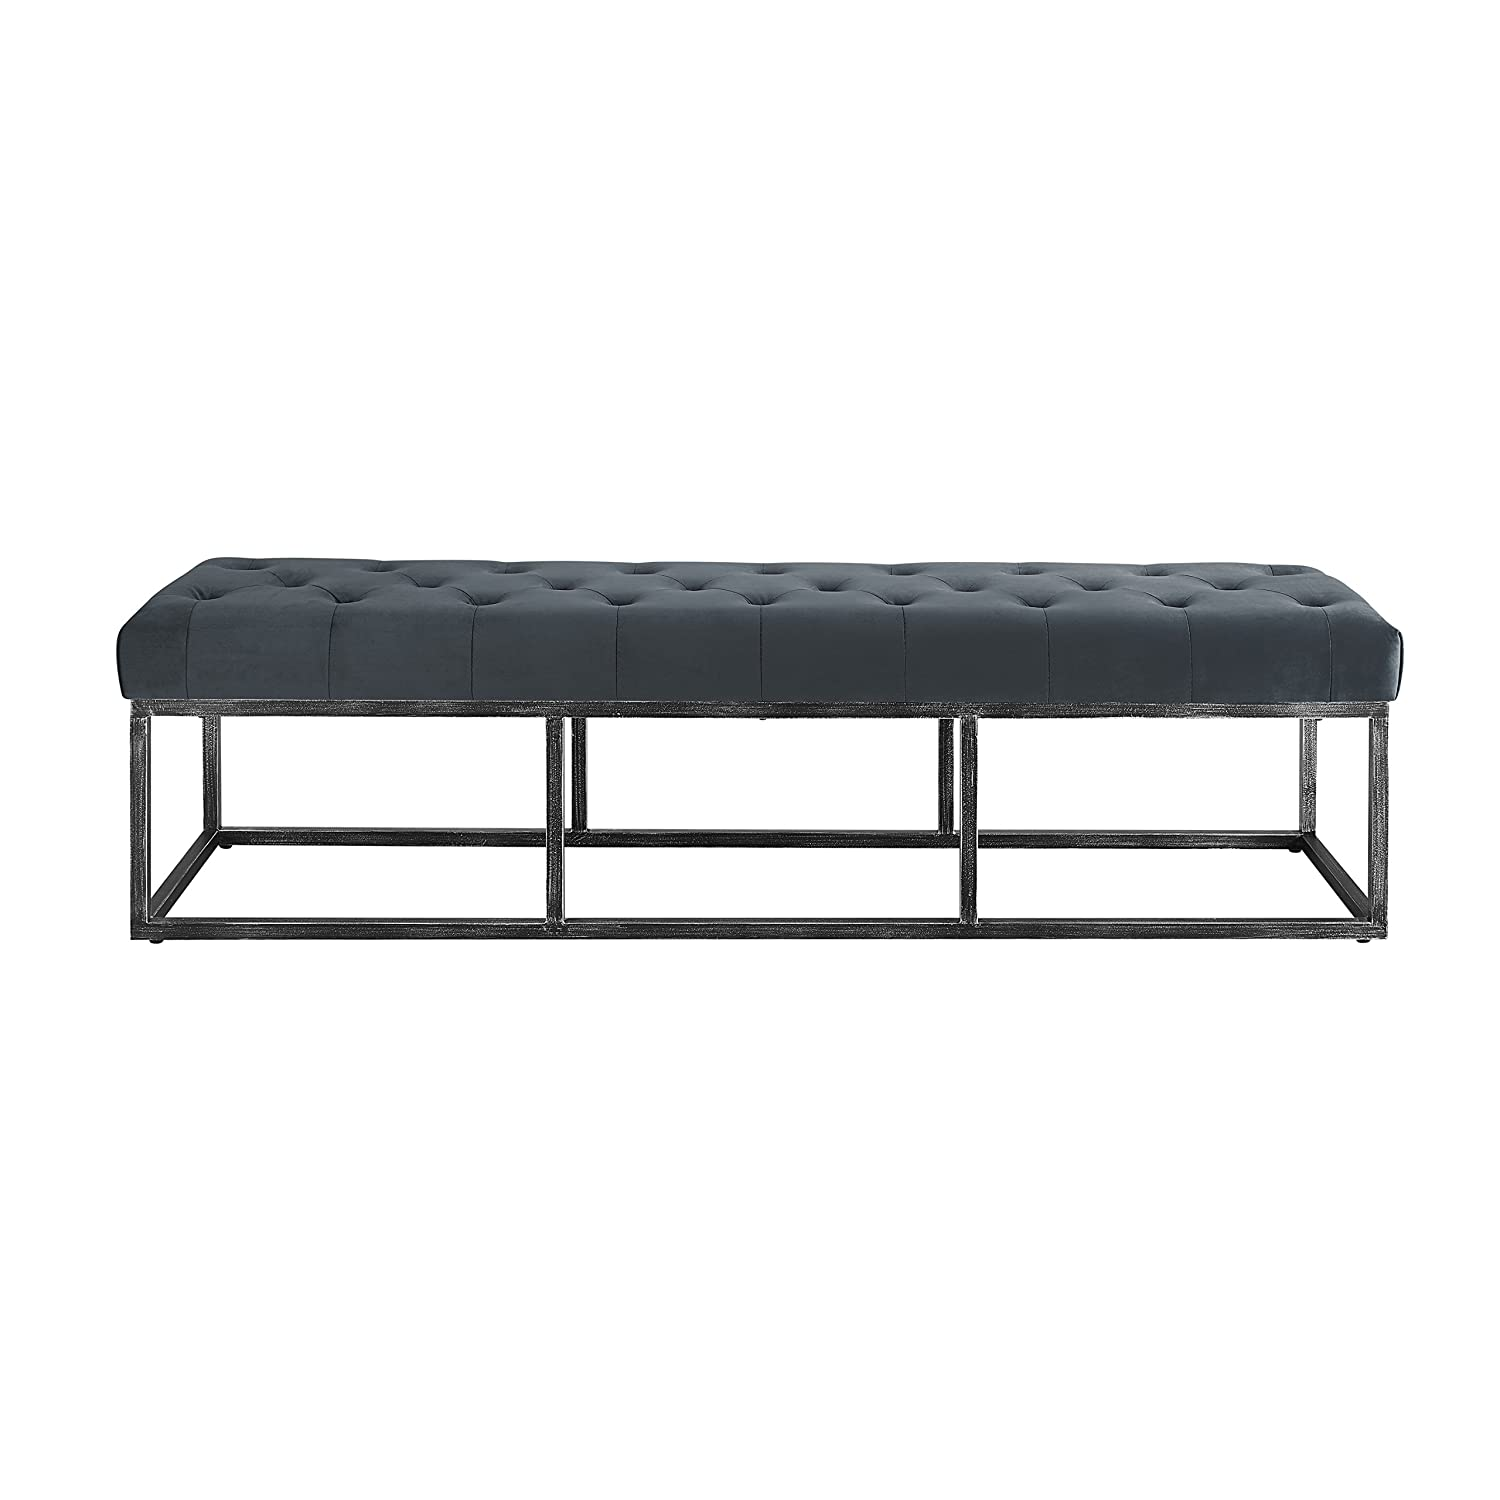 Brilliant Serta Danes Tufted Bench With Iron Legs Cobalt Blue Pabps2019 Chair Design Images Pabps2019Com